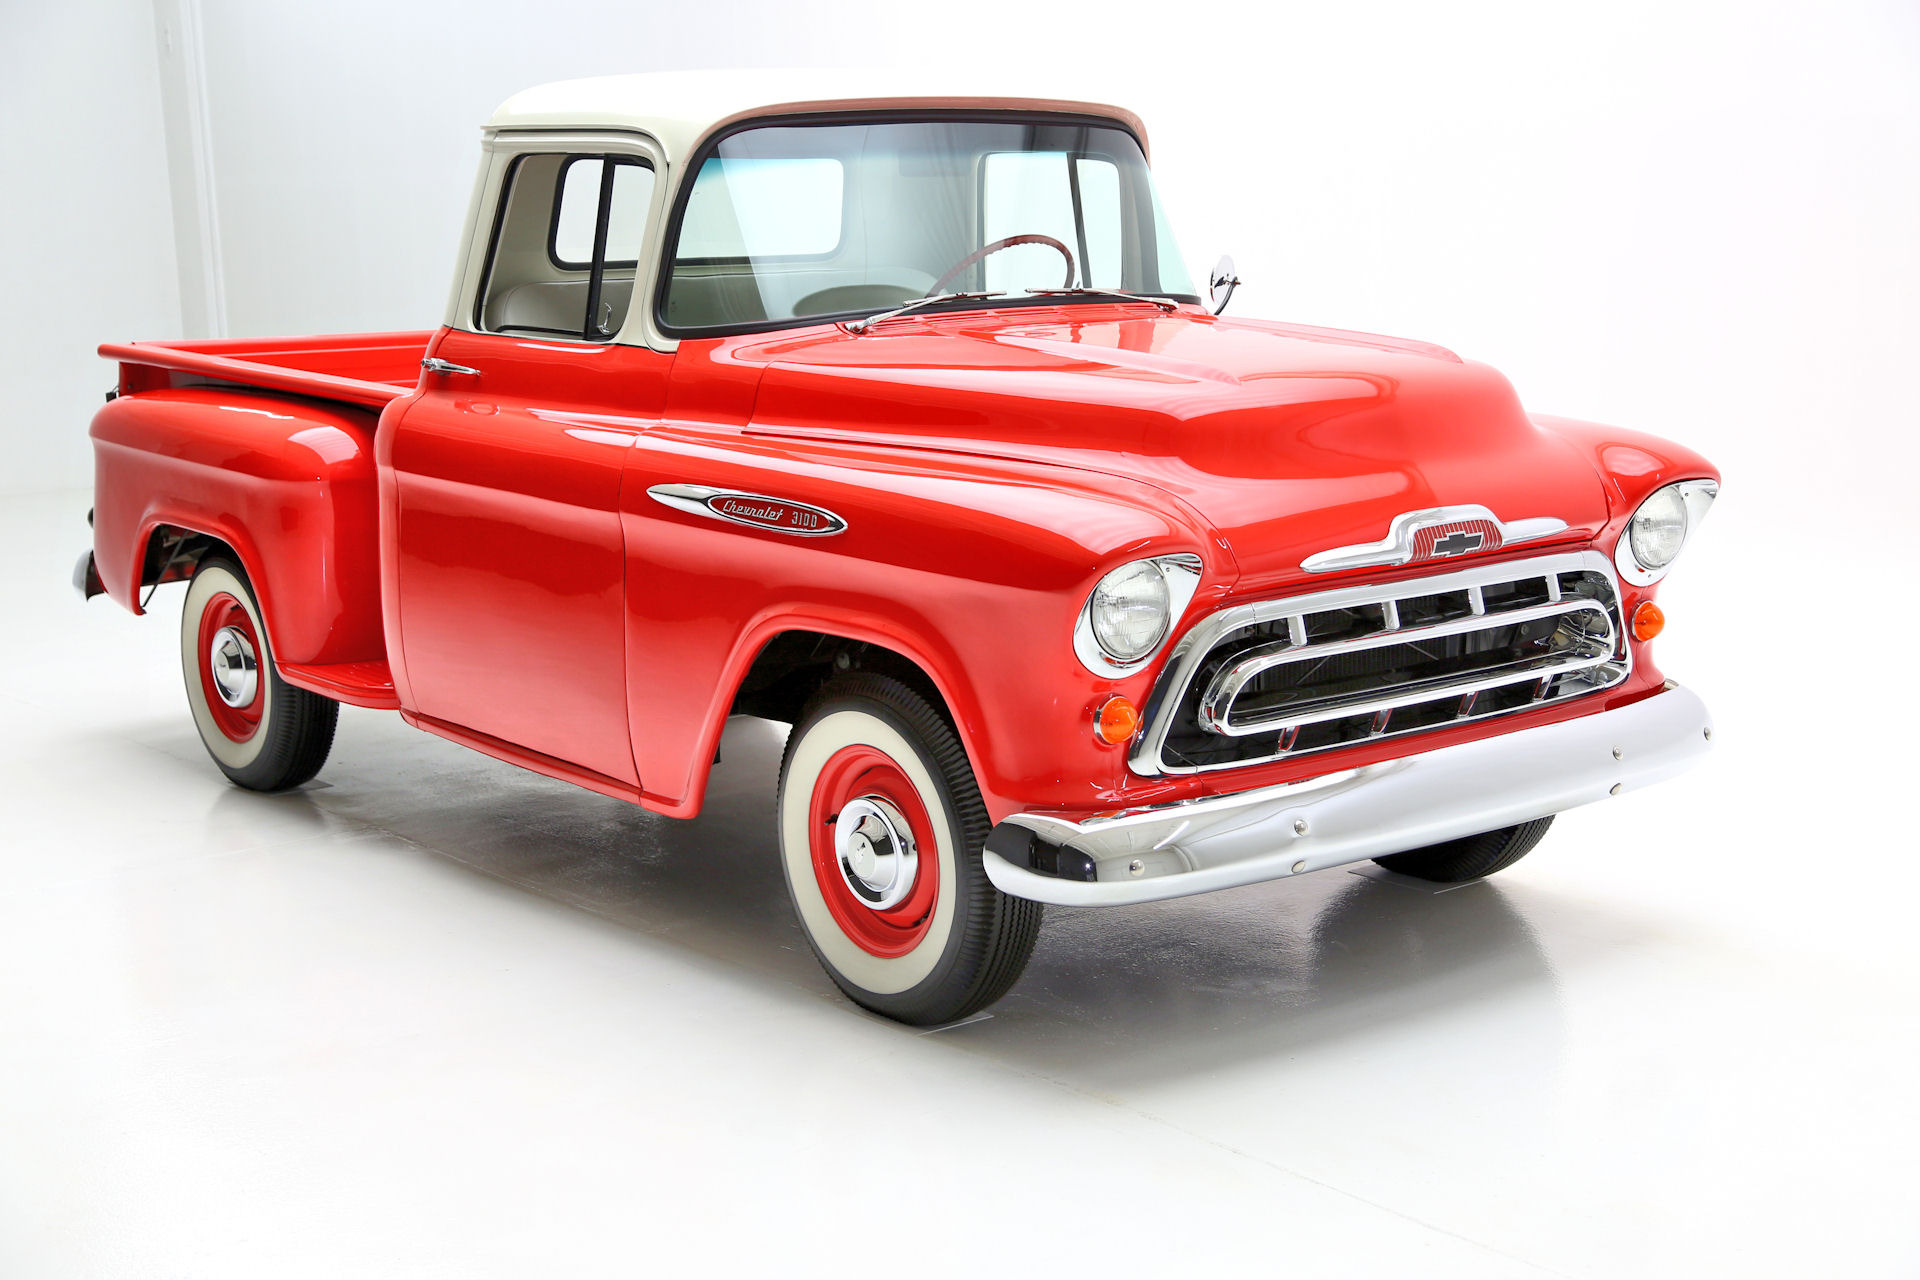 For Sale Used 1957 Chevrolet 3100 Pickup Nut & Bolt Frame Off | American Dream Machines Des Moines IA 50309